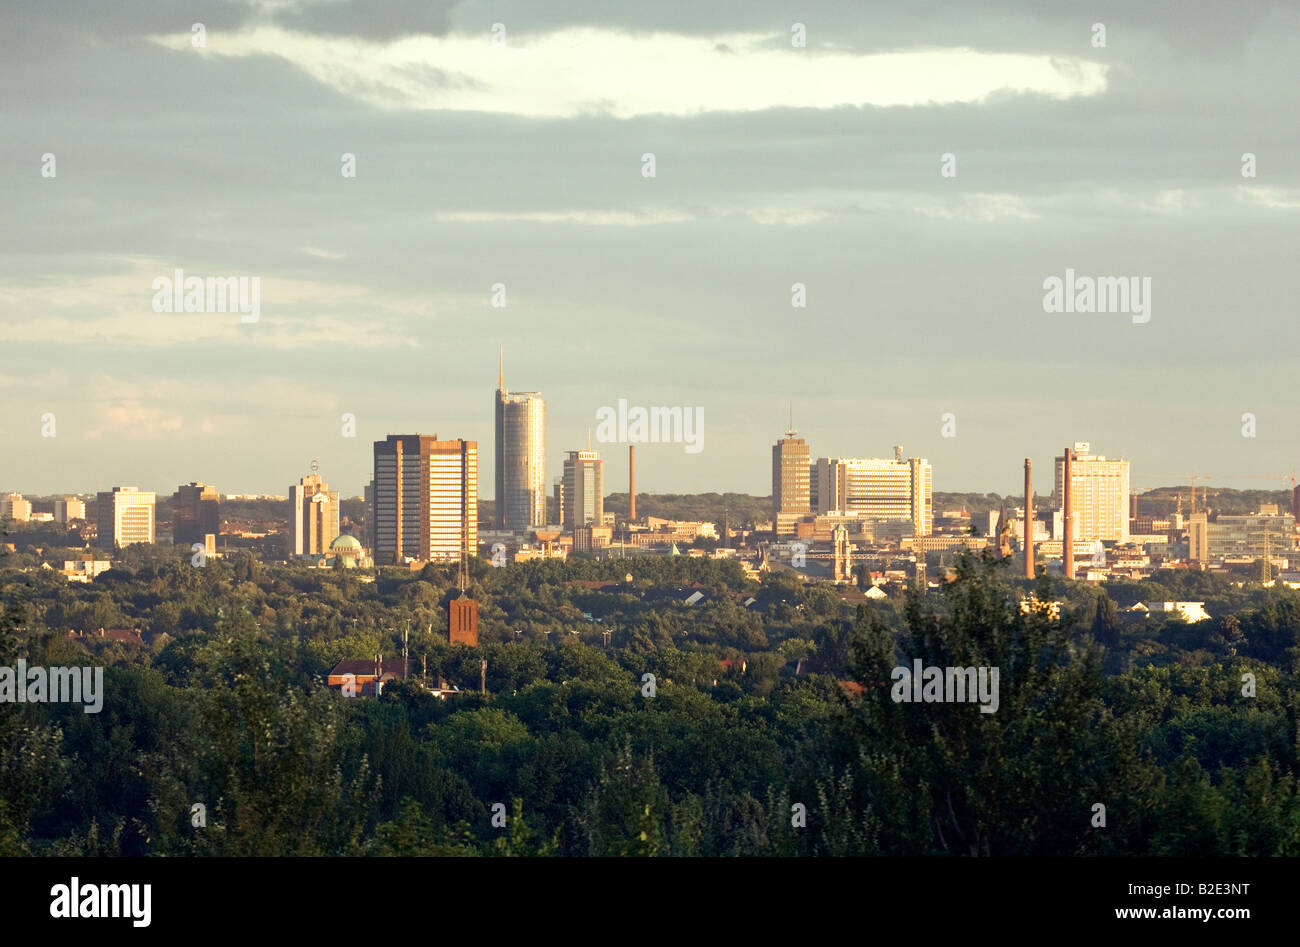 Essen, Ruhr Valley, North Rhine-Westphalia, Germany. City centre including the City Hall and the RWE Tower - Stock Image